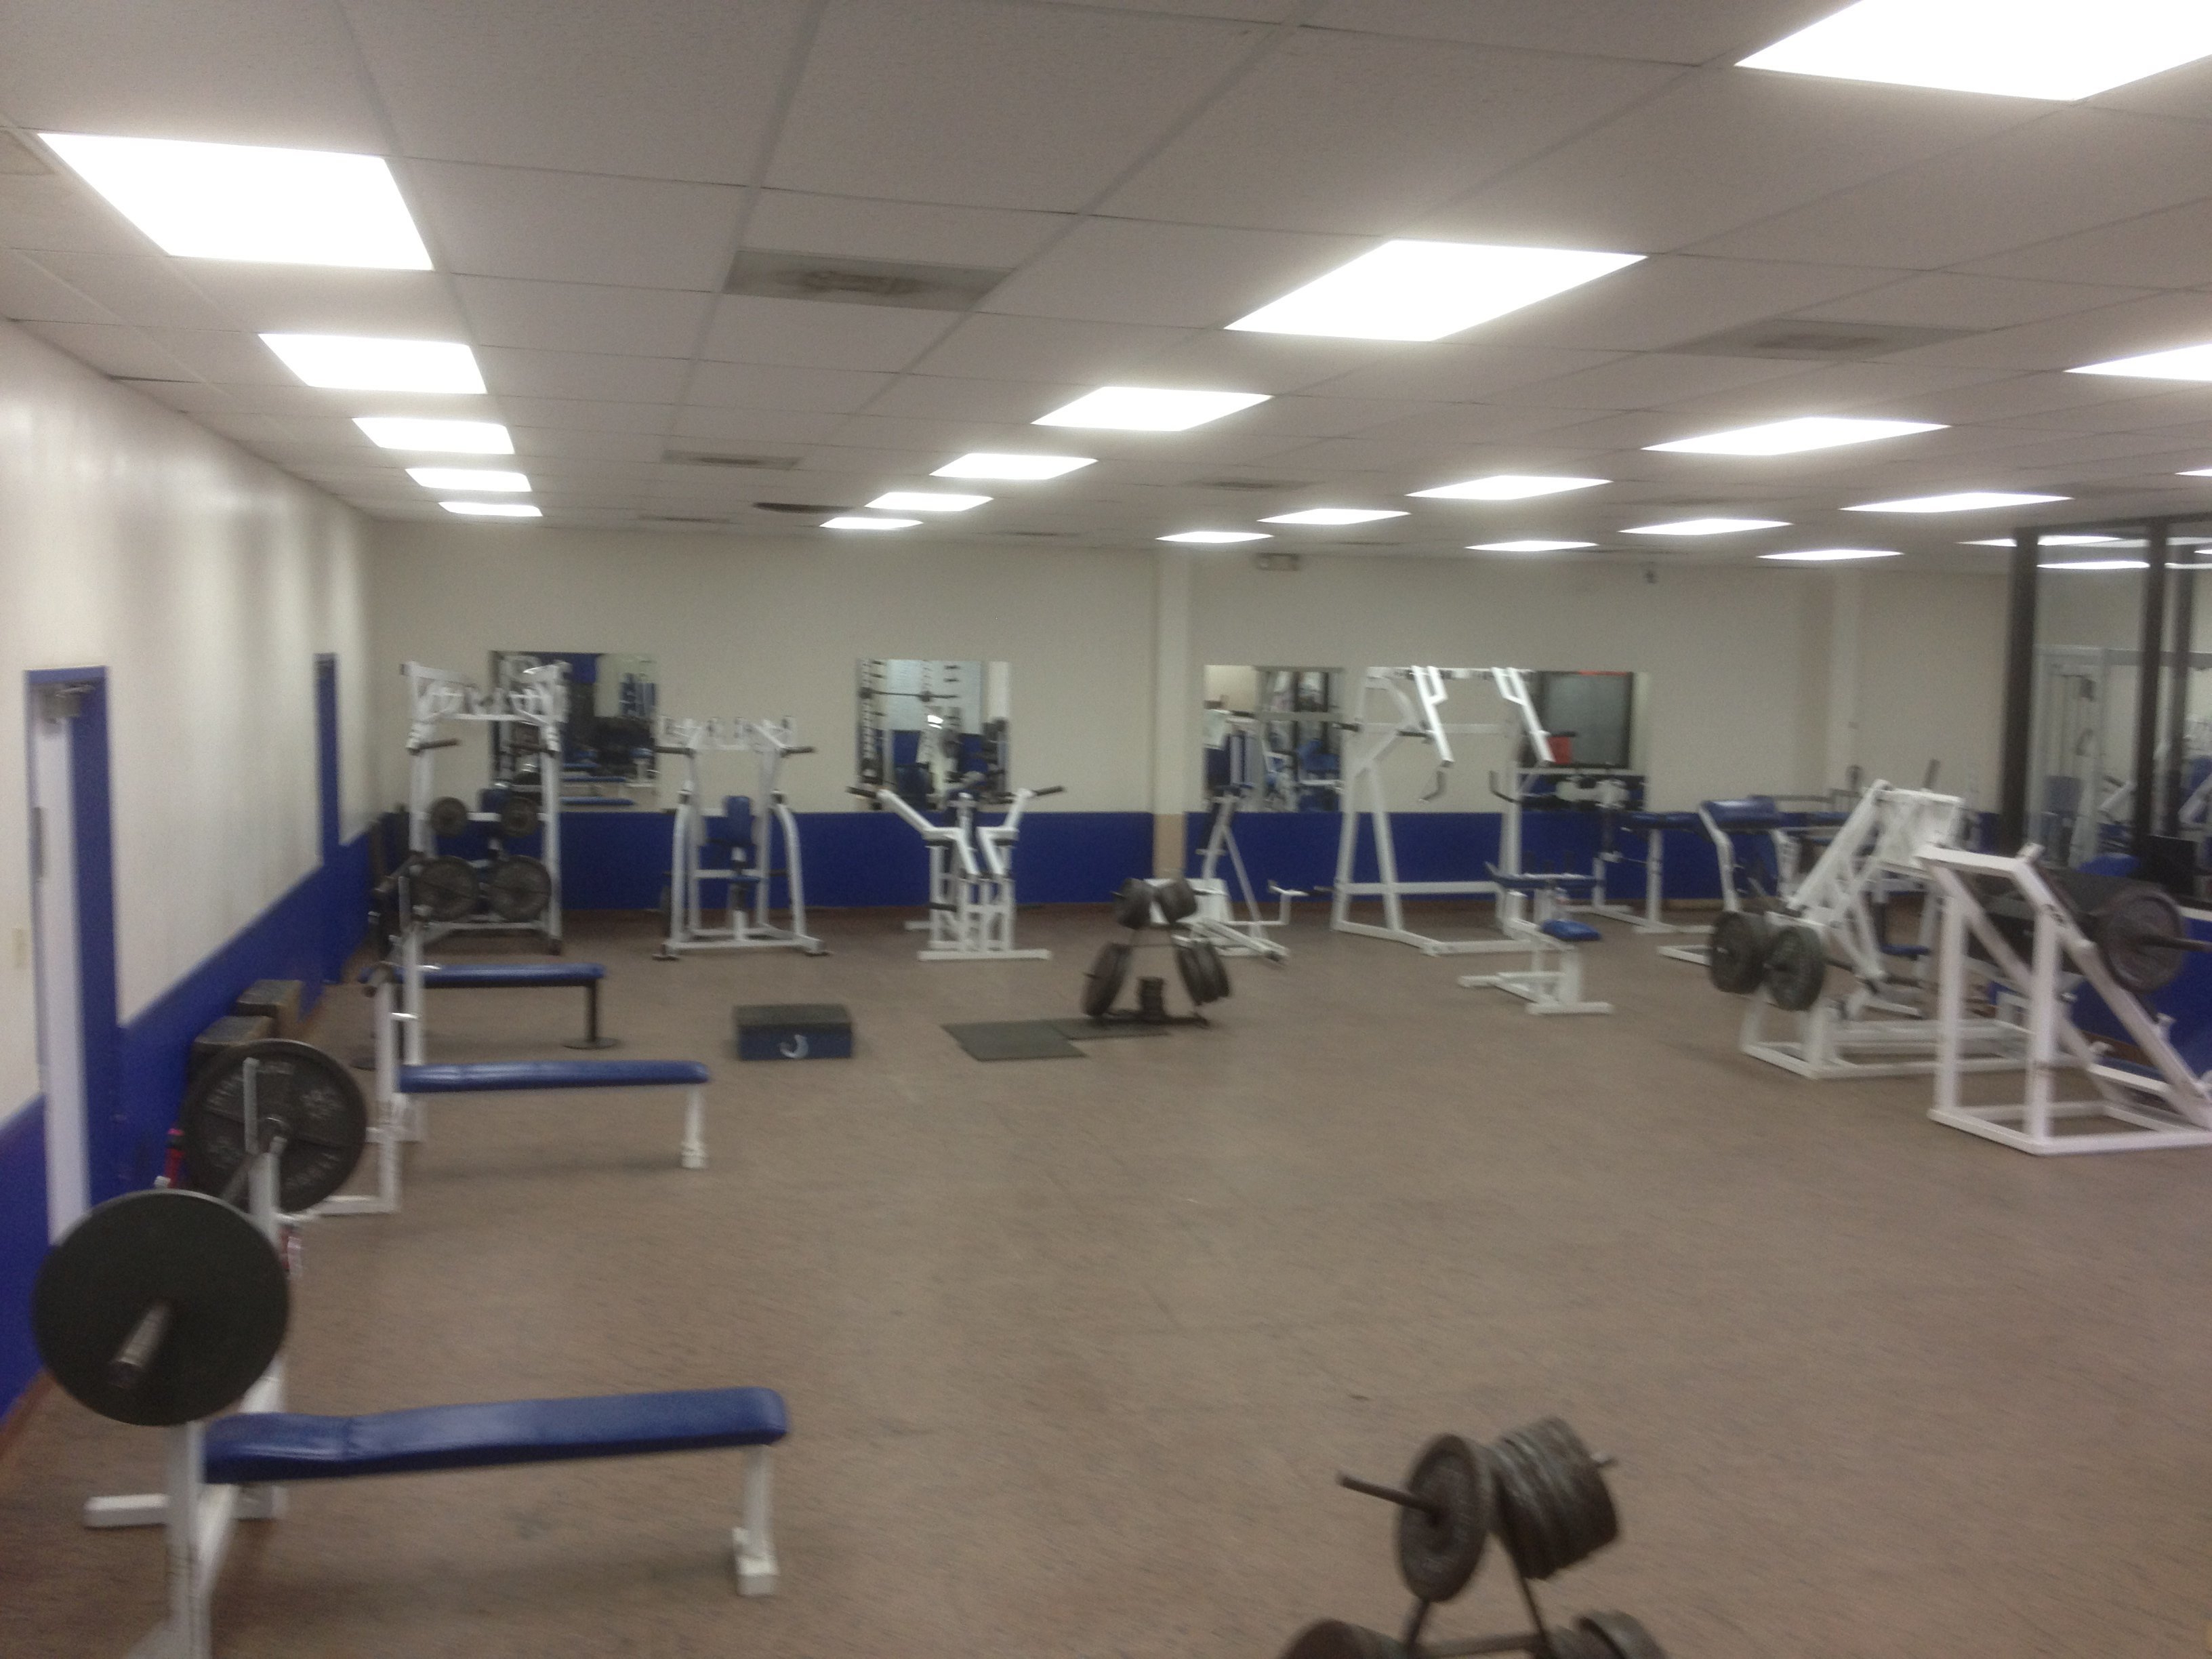 Weight-Room-4.JPG#asset:1886